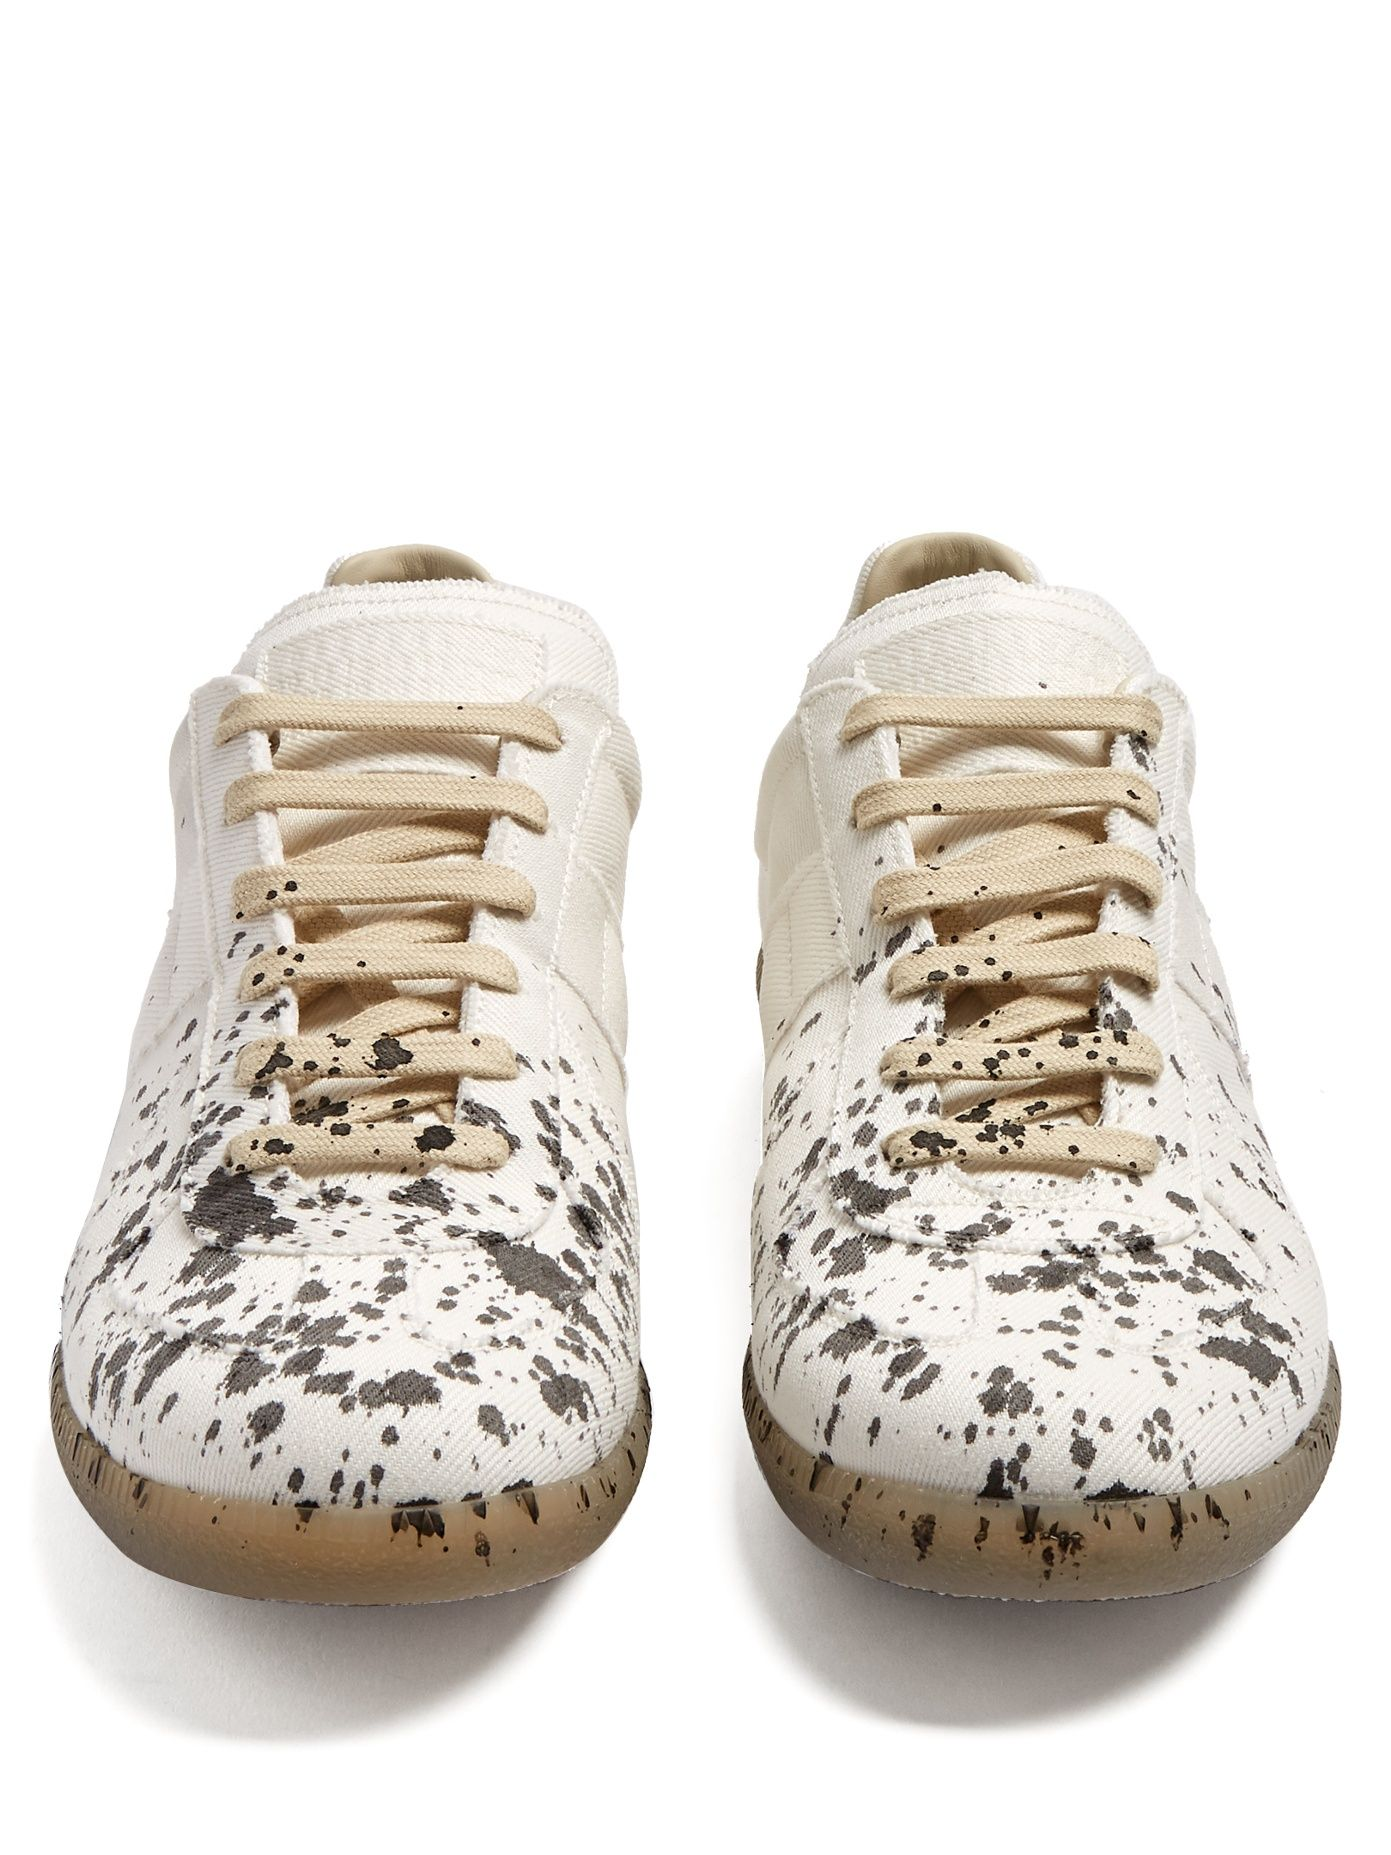 6588fdc2955 Replica low-top ink-effect canvas trainers | Maison Margiela ...